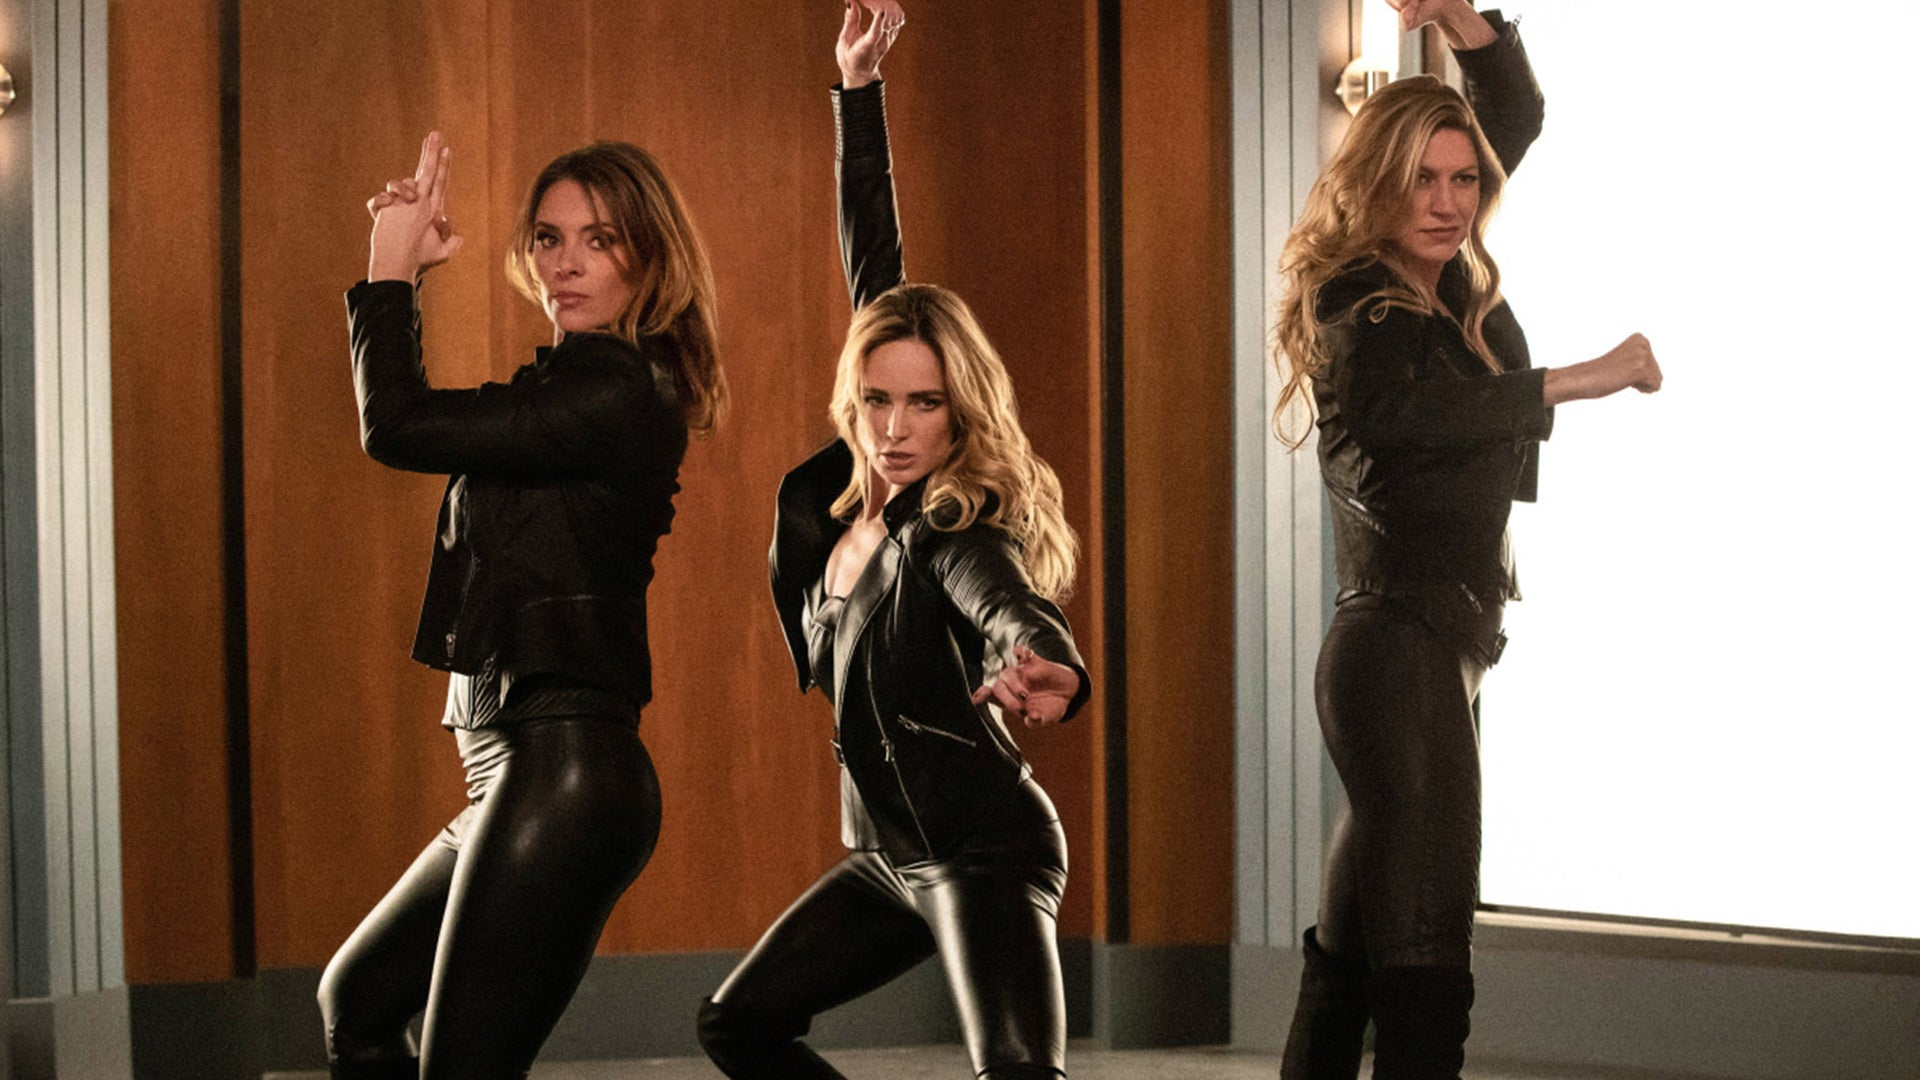 Amy Louise Pemberton, Caity Lotz and Jes Macallan, DC's Legends of Tomorrow